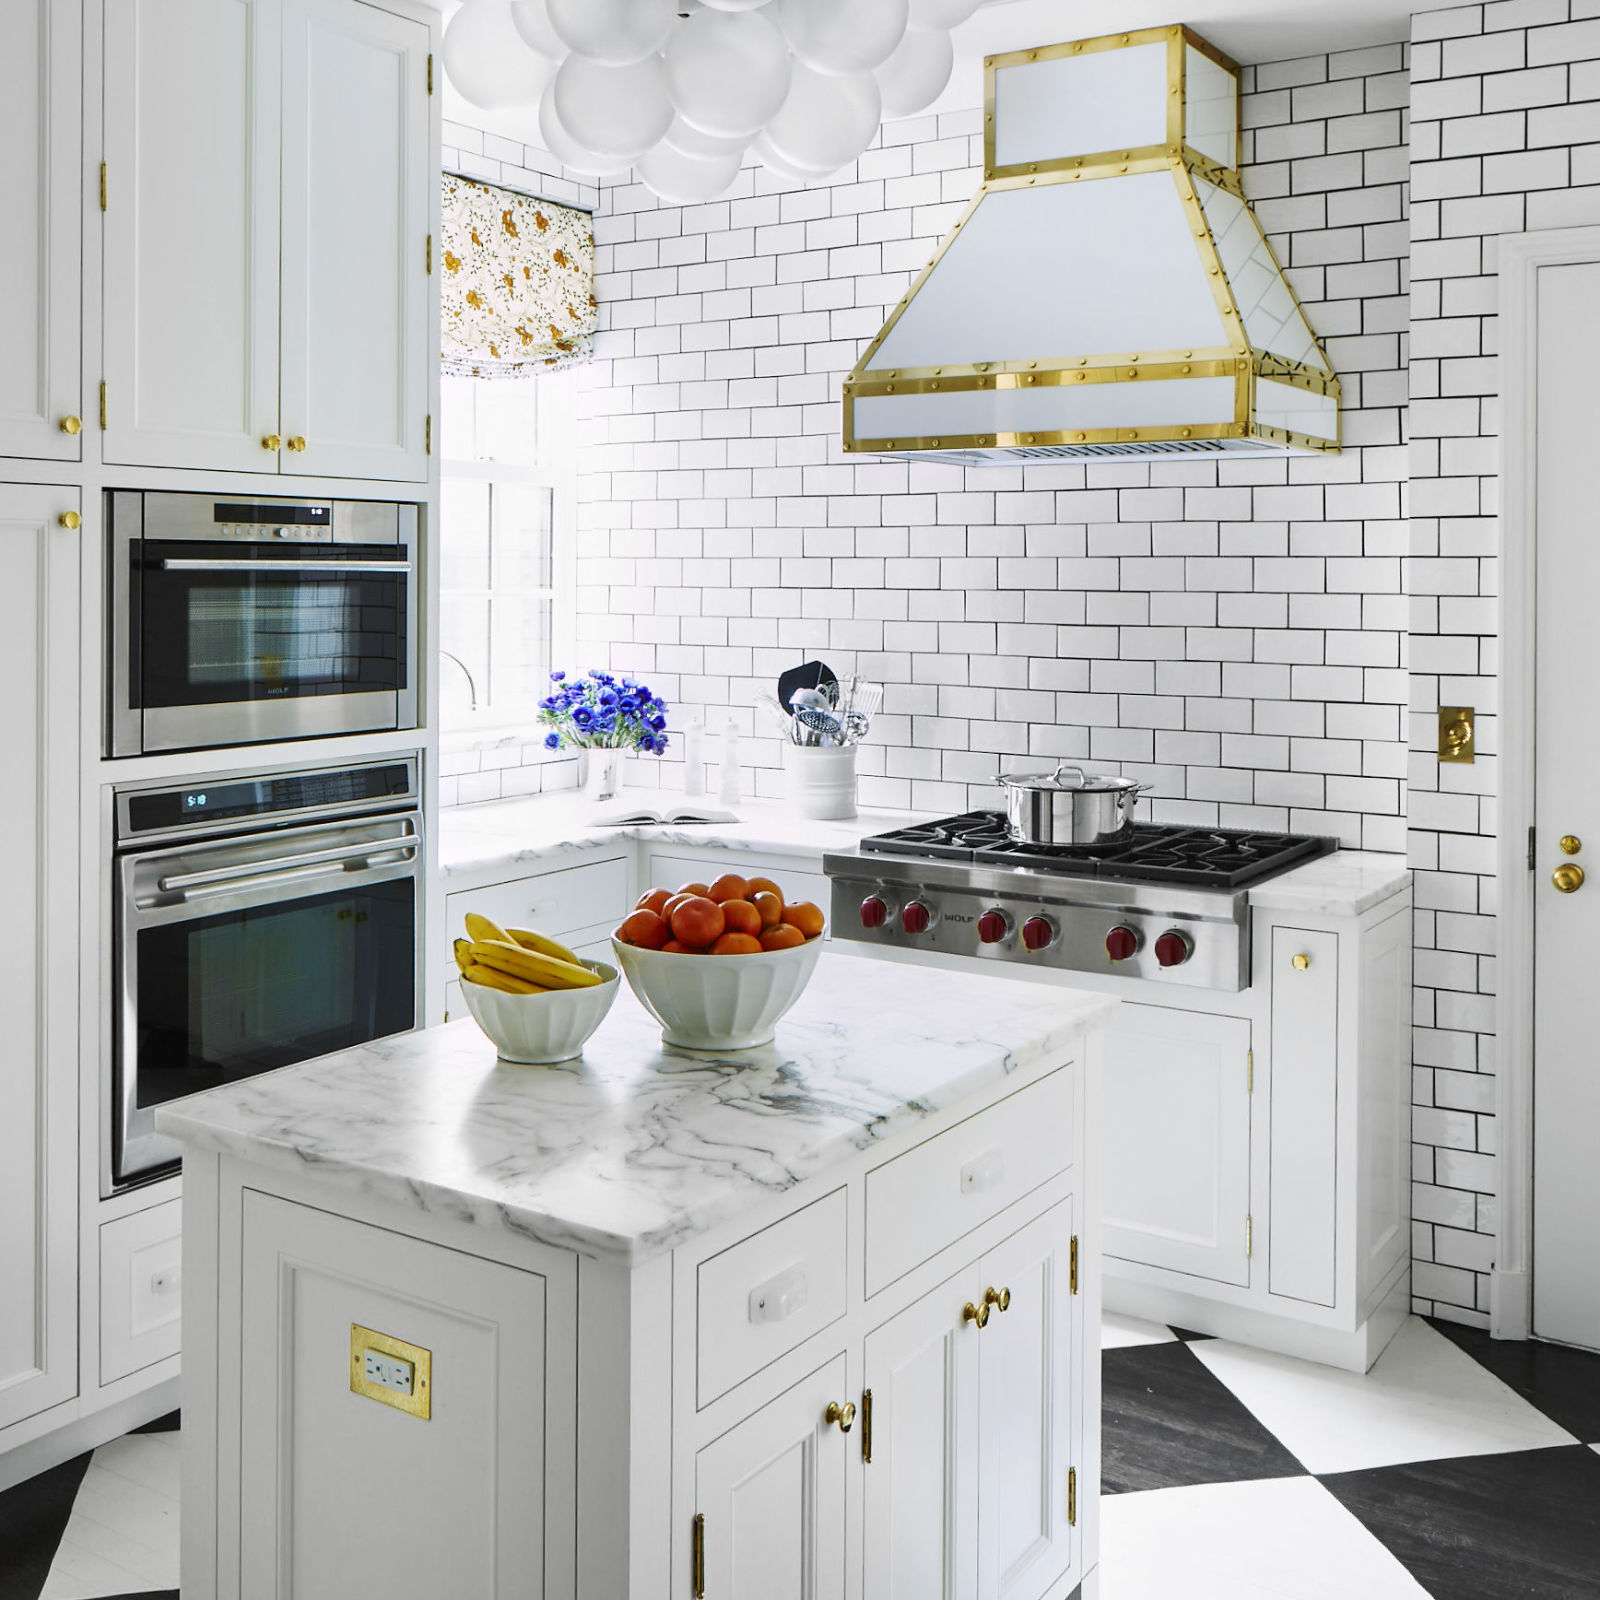 16 Small Kitchen Design Ideas - Reliable Remodeler